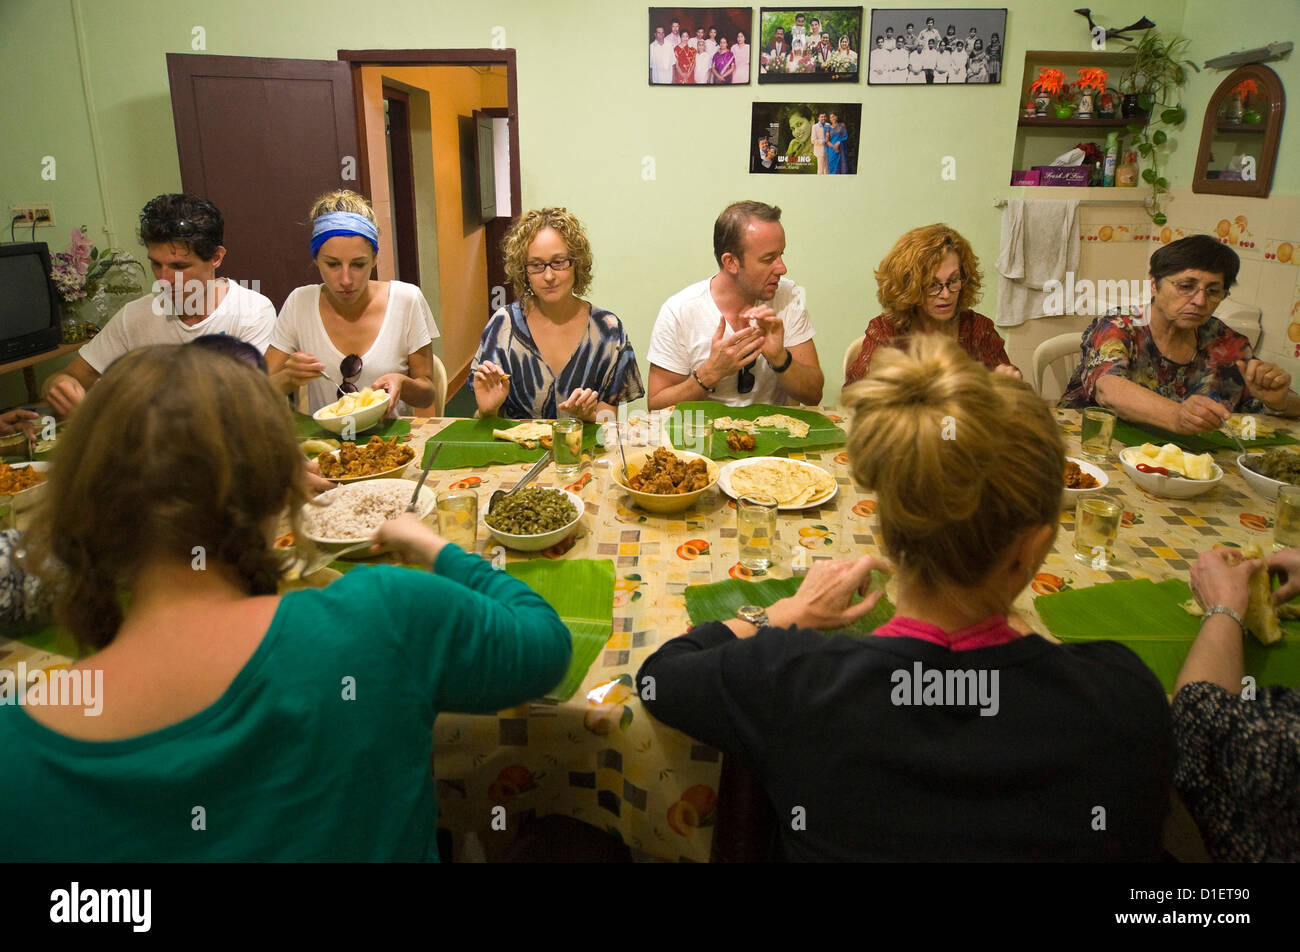 Horizontal portrait of Western tourists eating Indian meal using fingers instead of cutlery and banana leaves instead - Stock Image